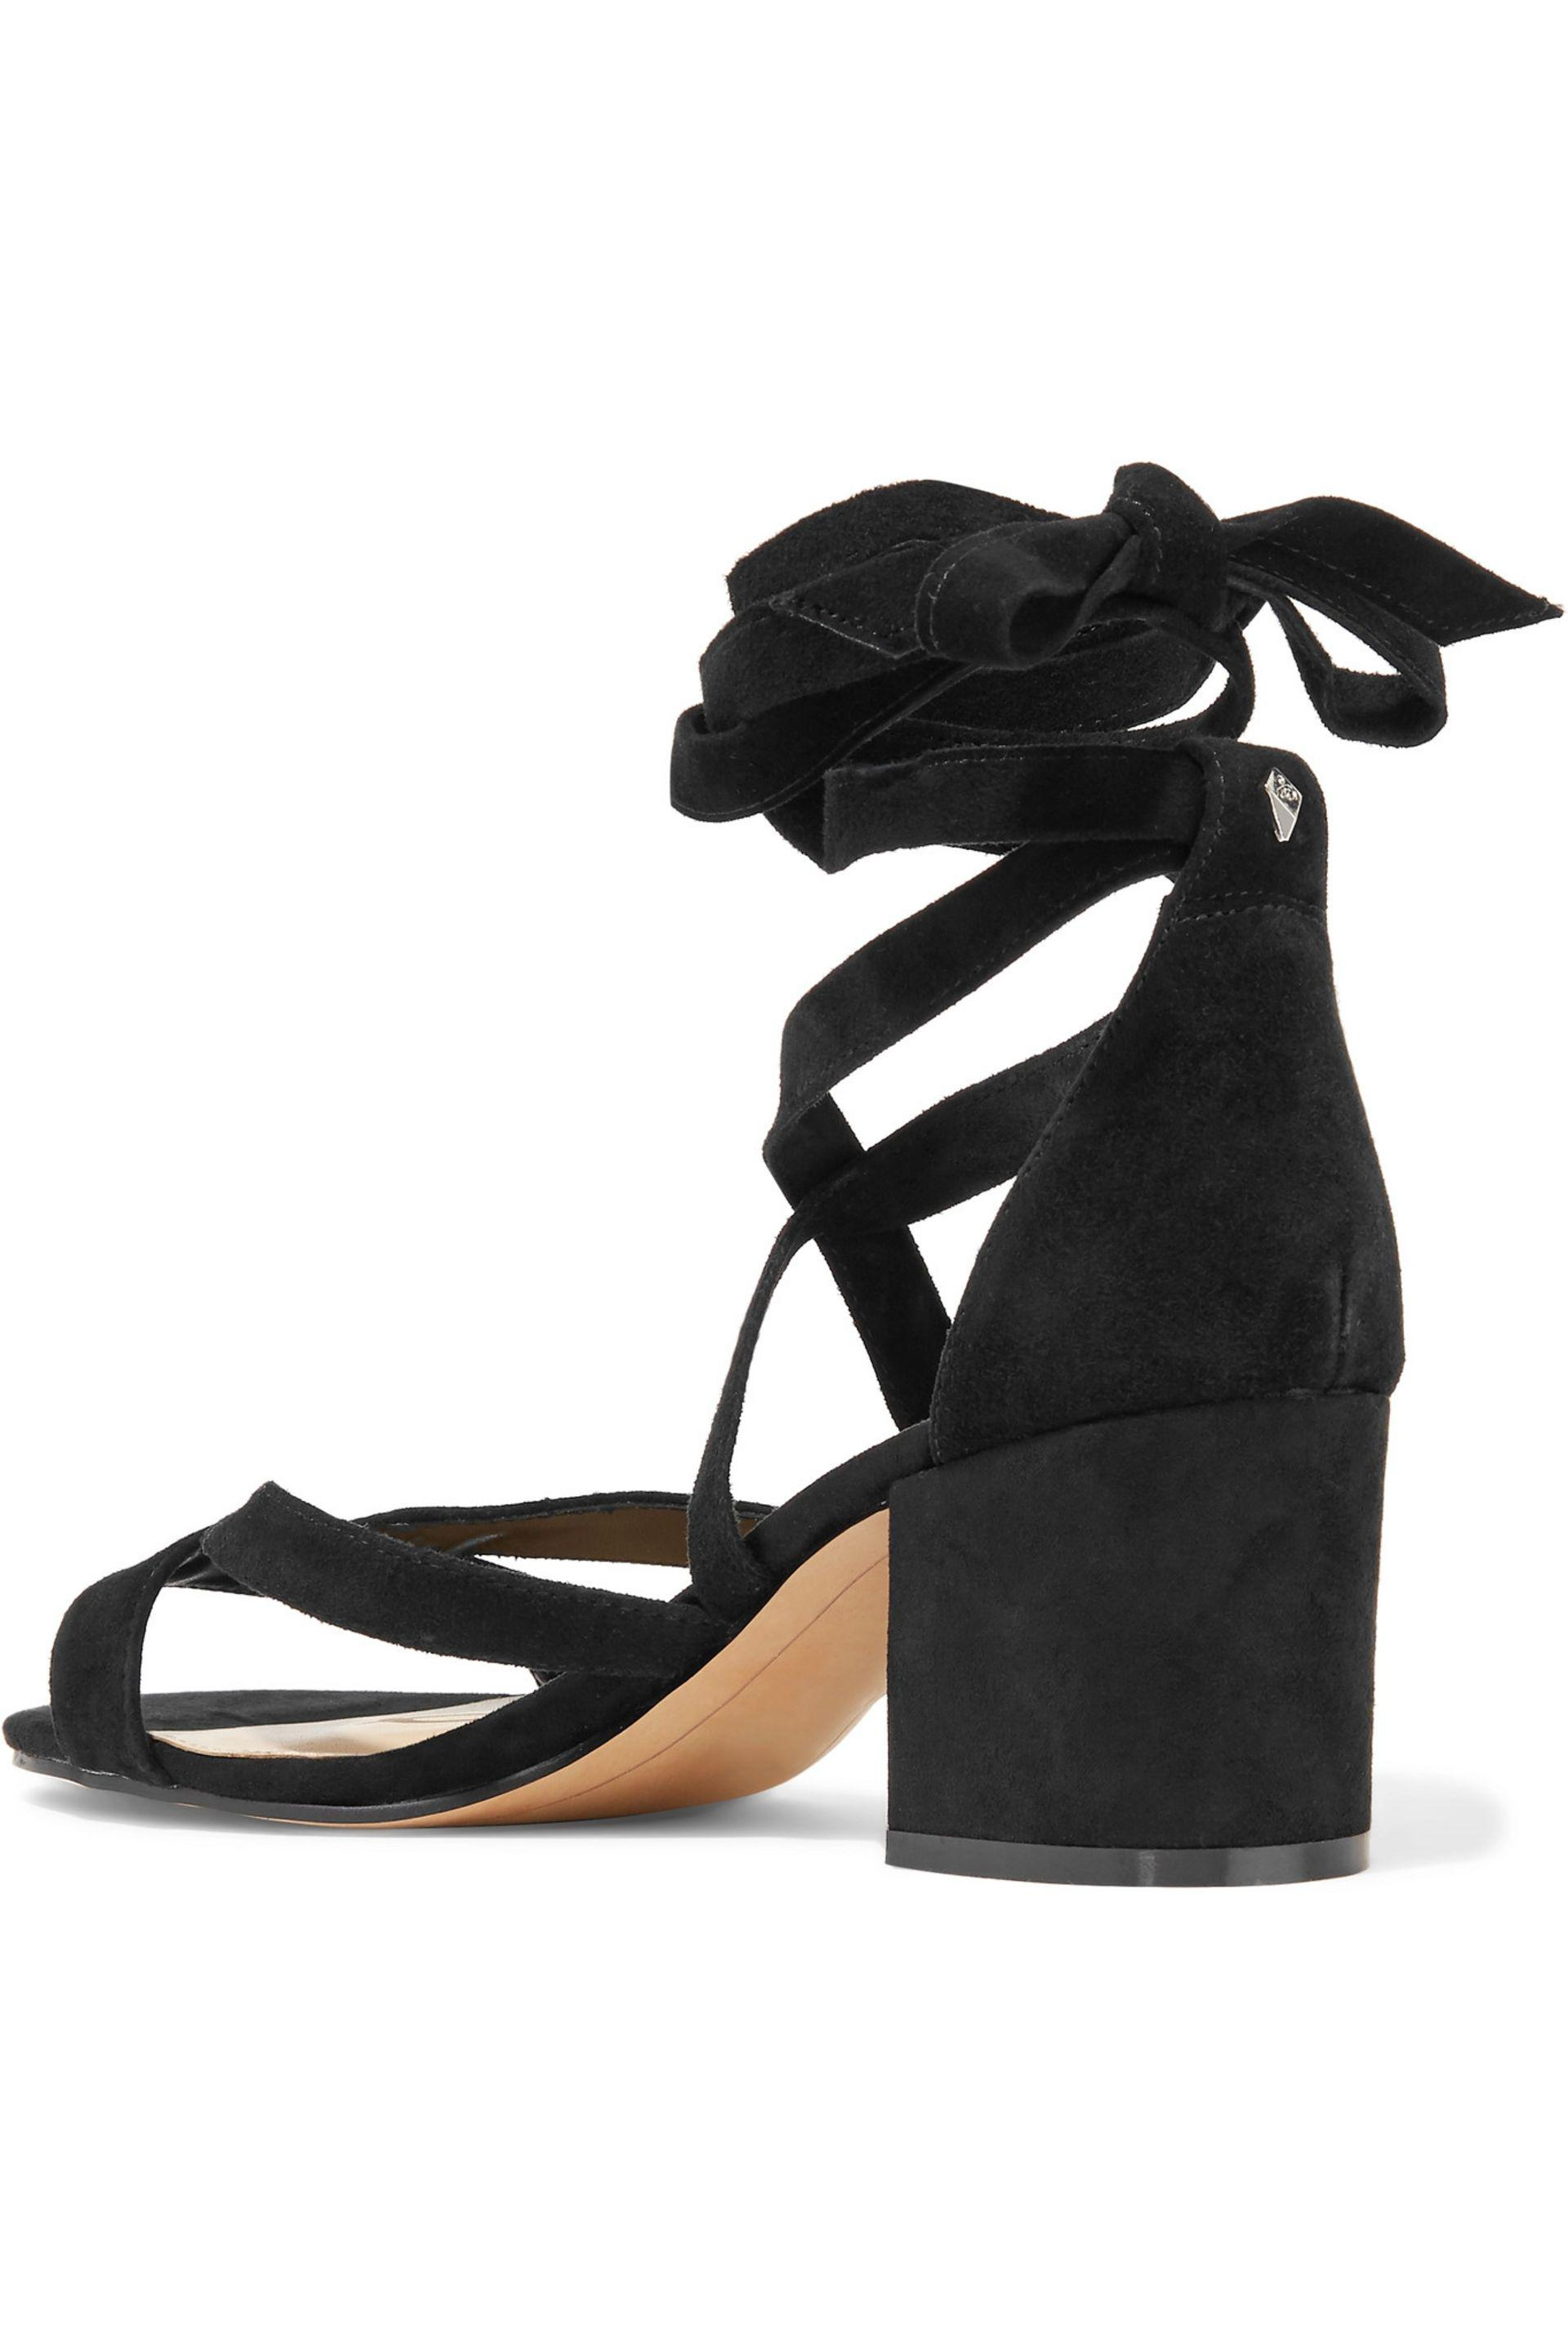 3f136abda34 Gallery. Previously sold at  THE OUTNET.COM · Women s Sam Edelman ...